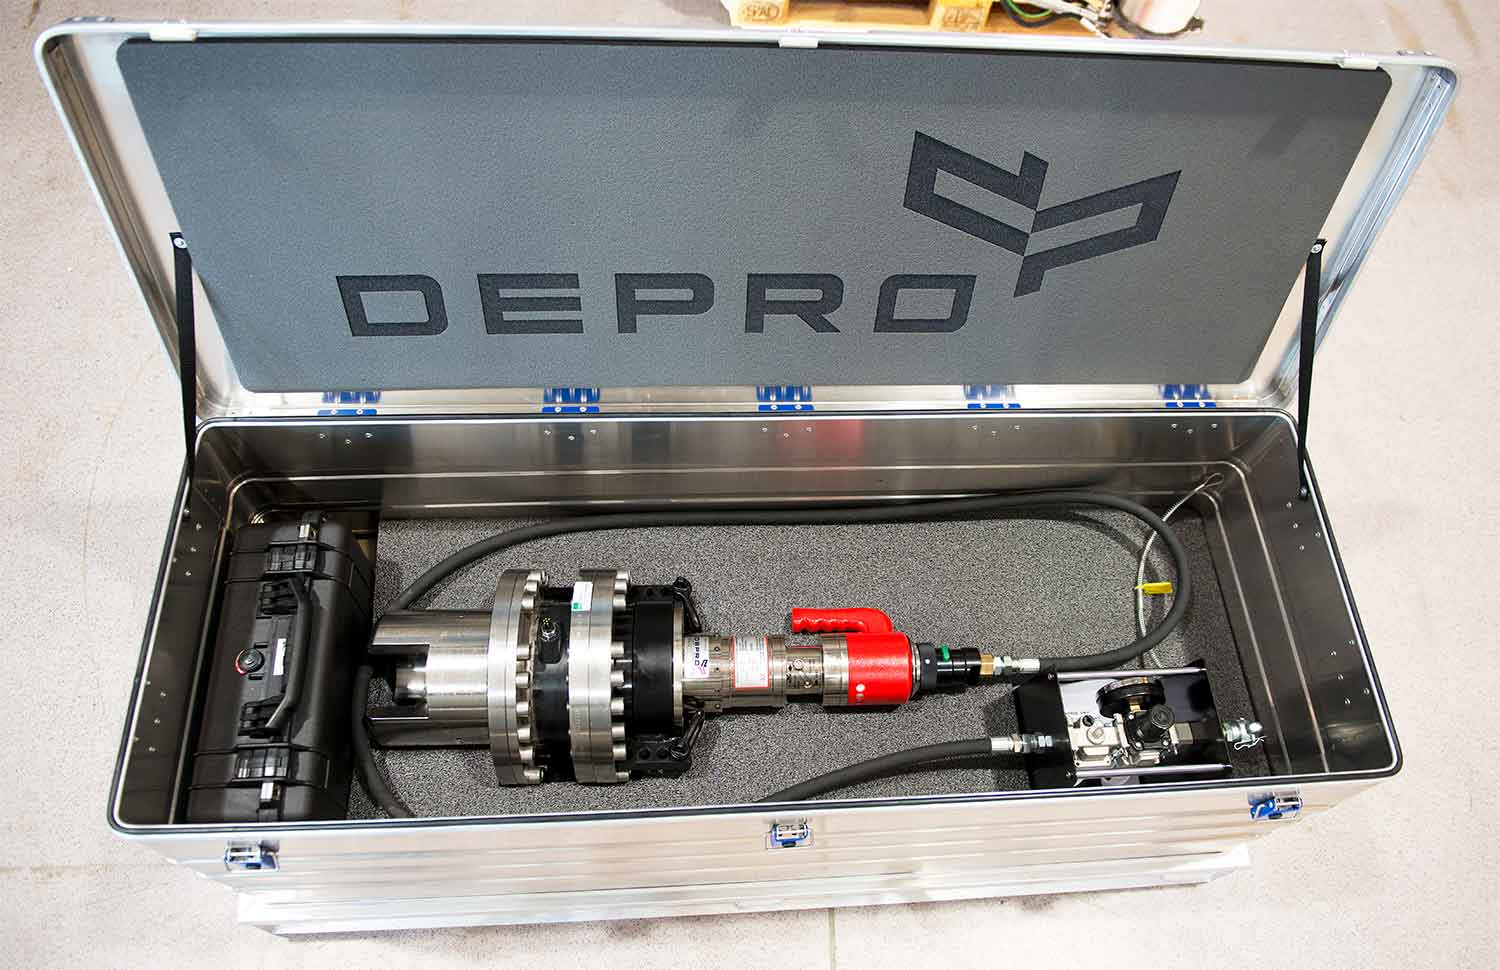 Torque tool from Depro AS designed for use subsea, and remote operated through ROV placed in an aluminum box with foam ready for transport